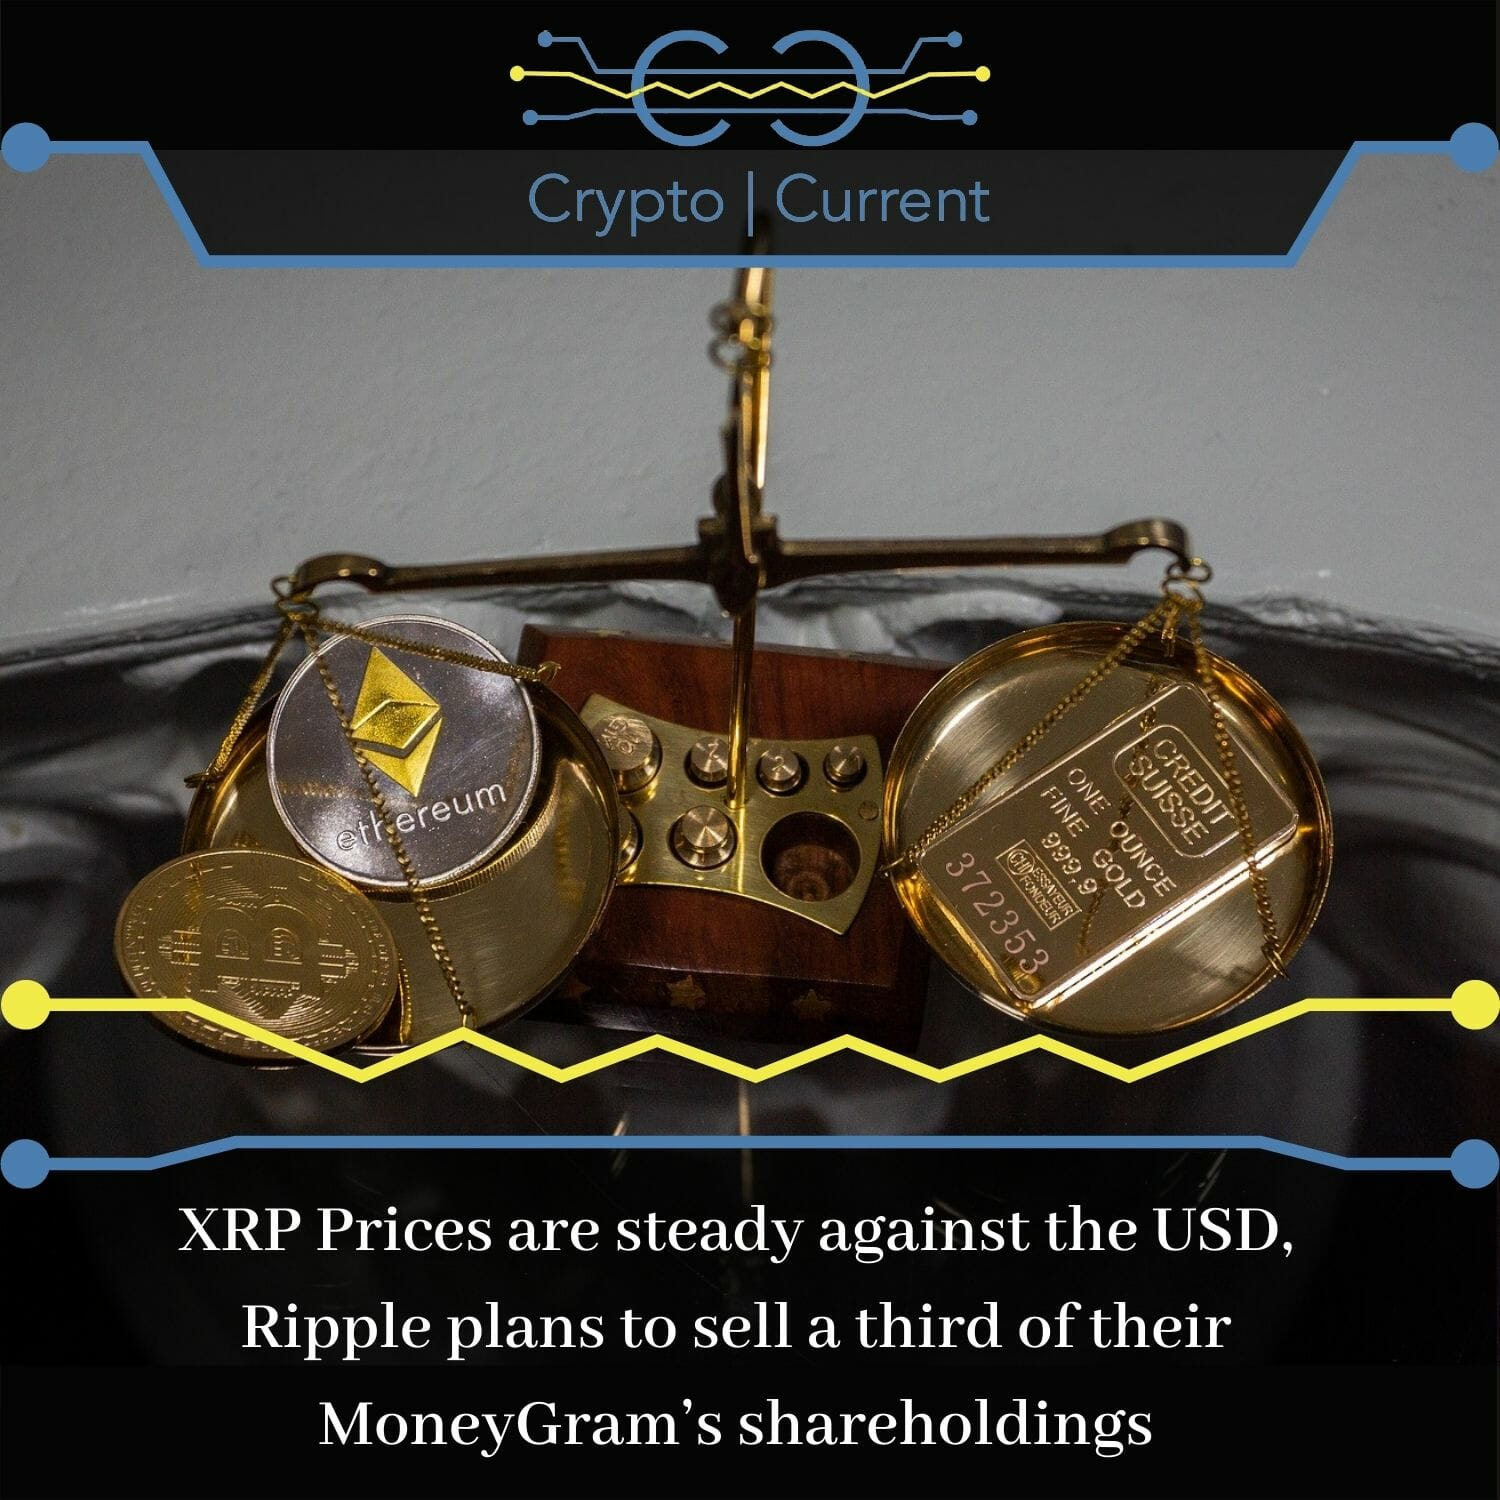 XRP Prices are steady against the USD, Ripple plans to sell a third of their MoneyGram's shareholdings